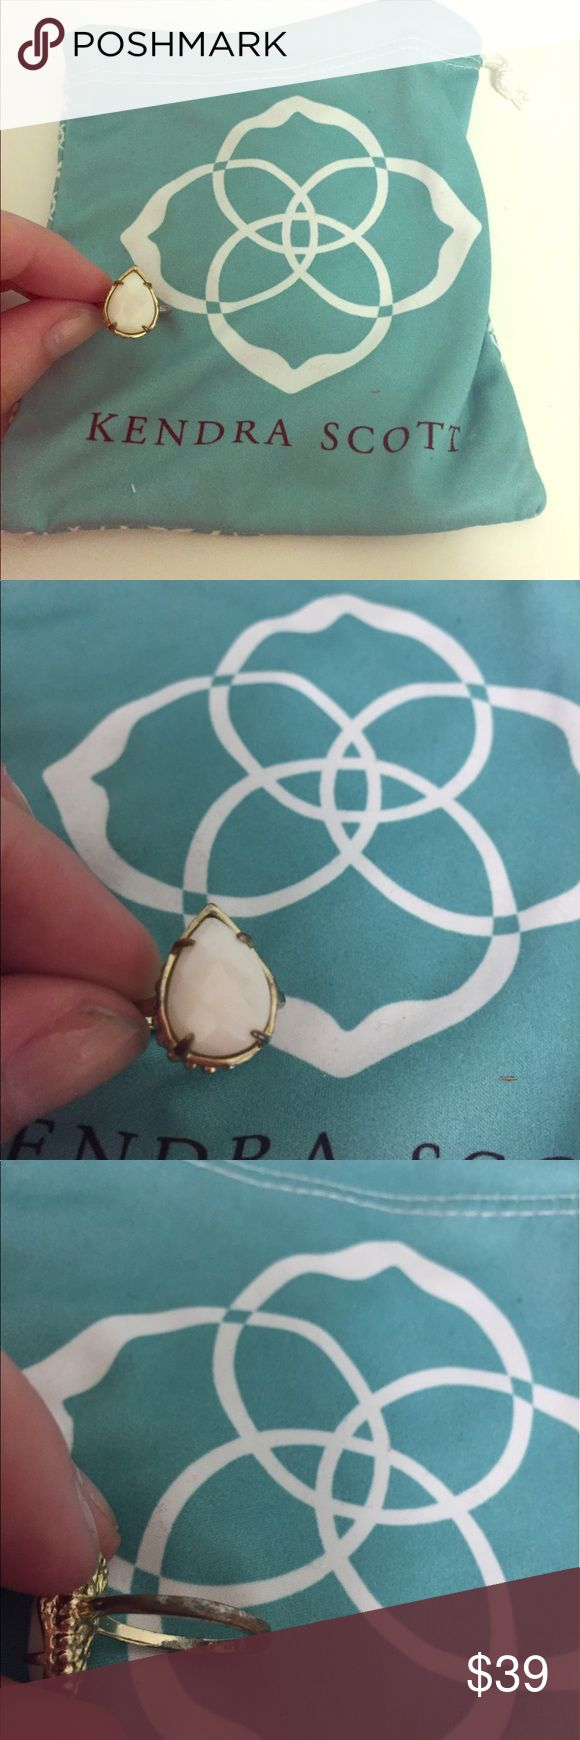 Kendra Scott Daisy white gold ring 7 teardrop Excellent used condition Kendra Scott daisy ring, gold plated with white stone. Gold has rubbed off on the base of the ring, as shown. Re-posting since the seller said it was an 8, but my ring sizer shows a perfect size 7. Beautiful ring, just too small for me! Kendra Scott Jewelry Rings